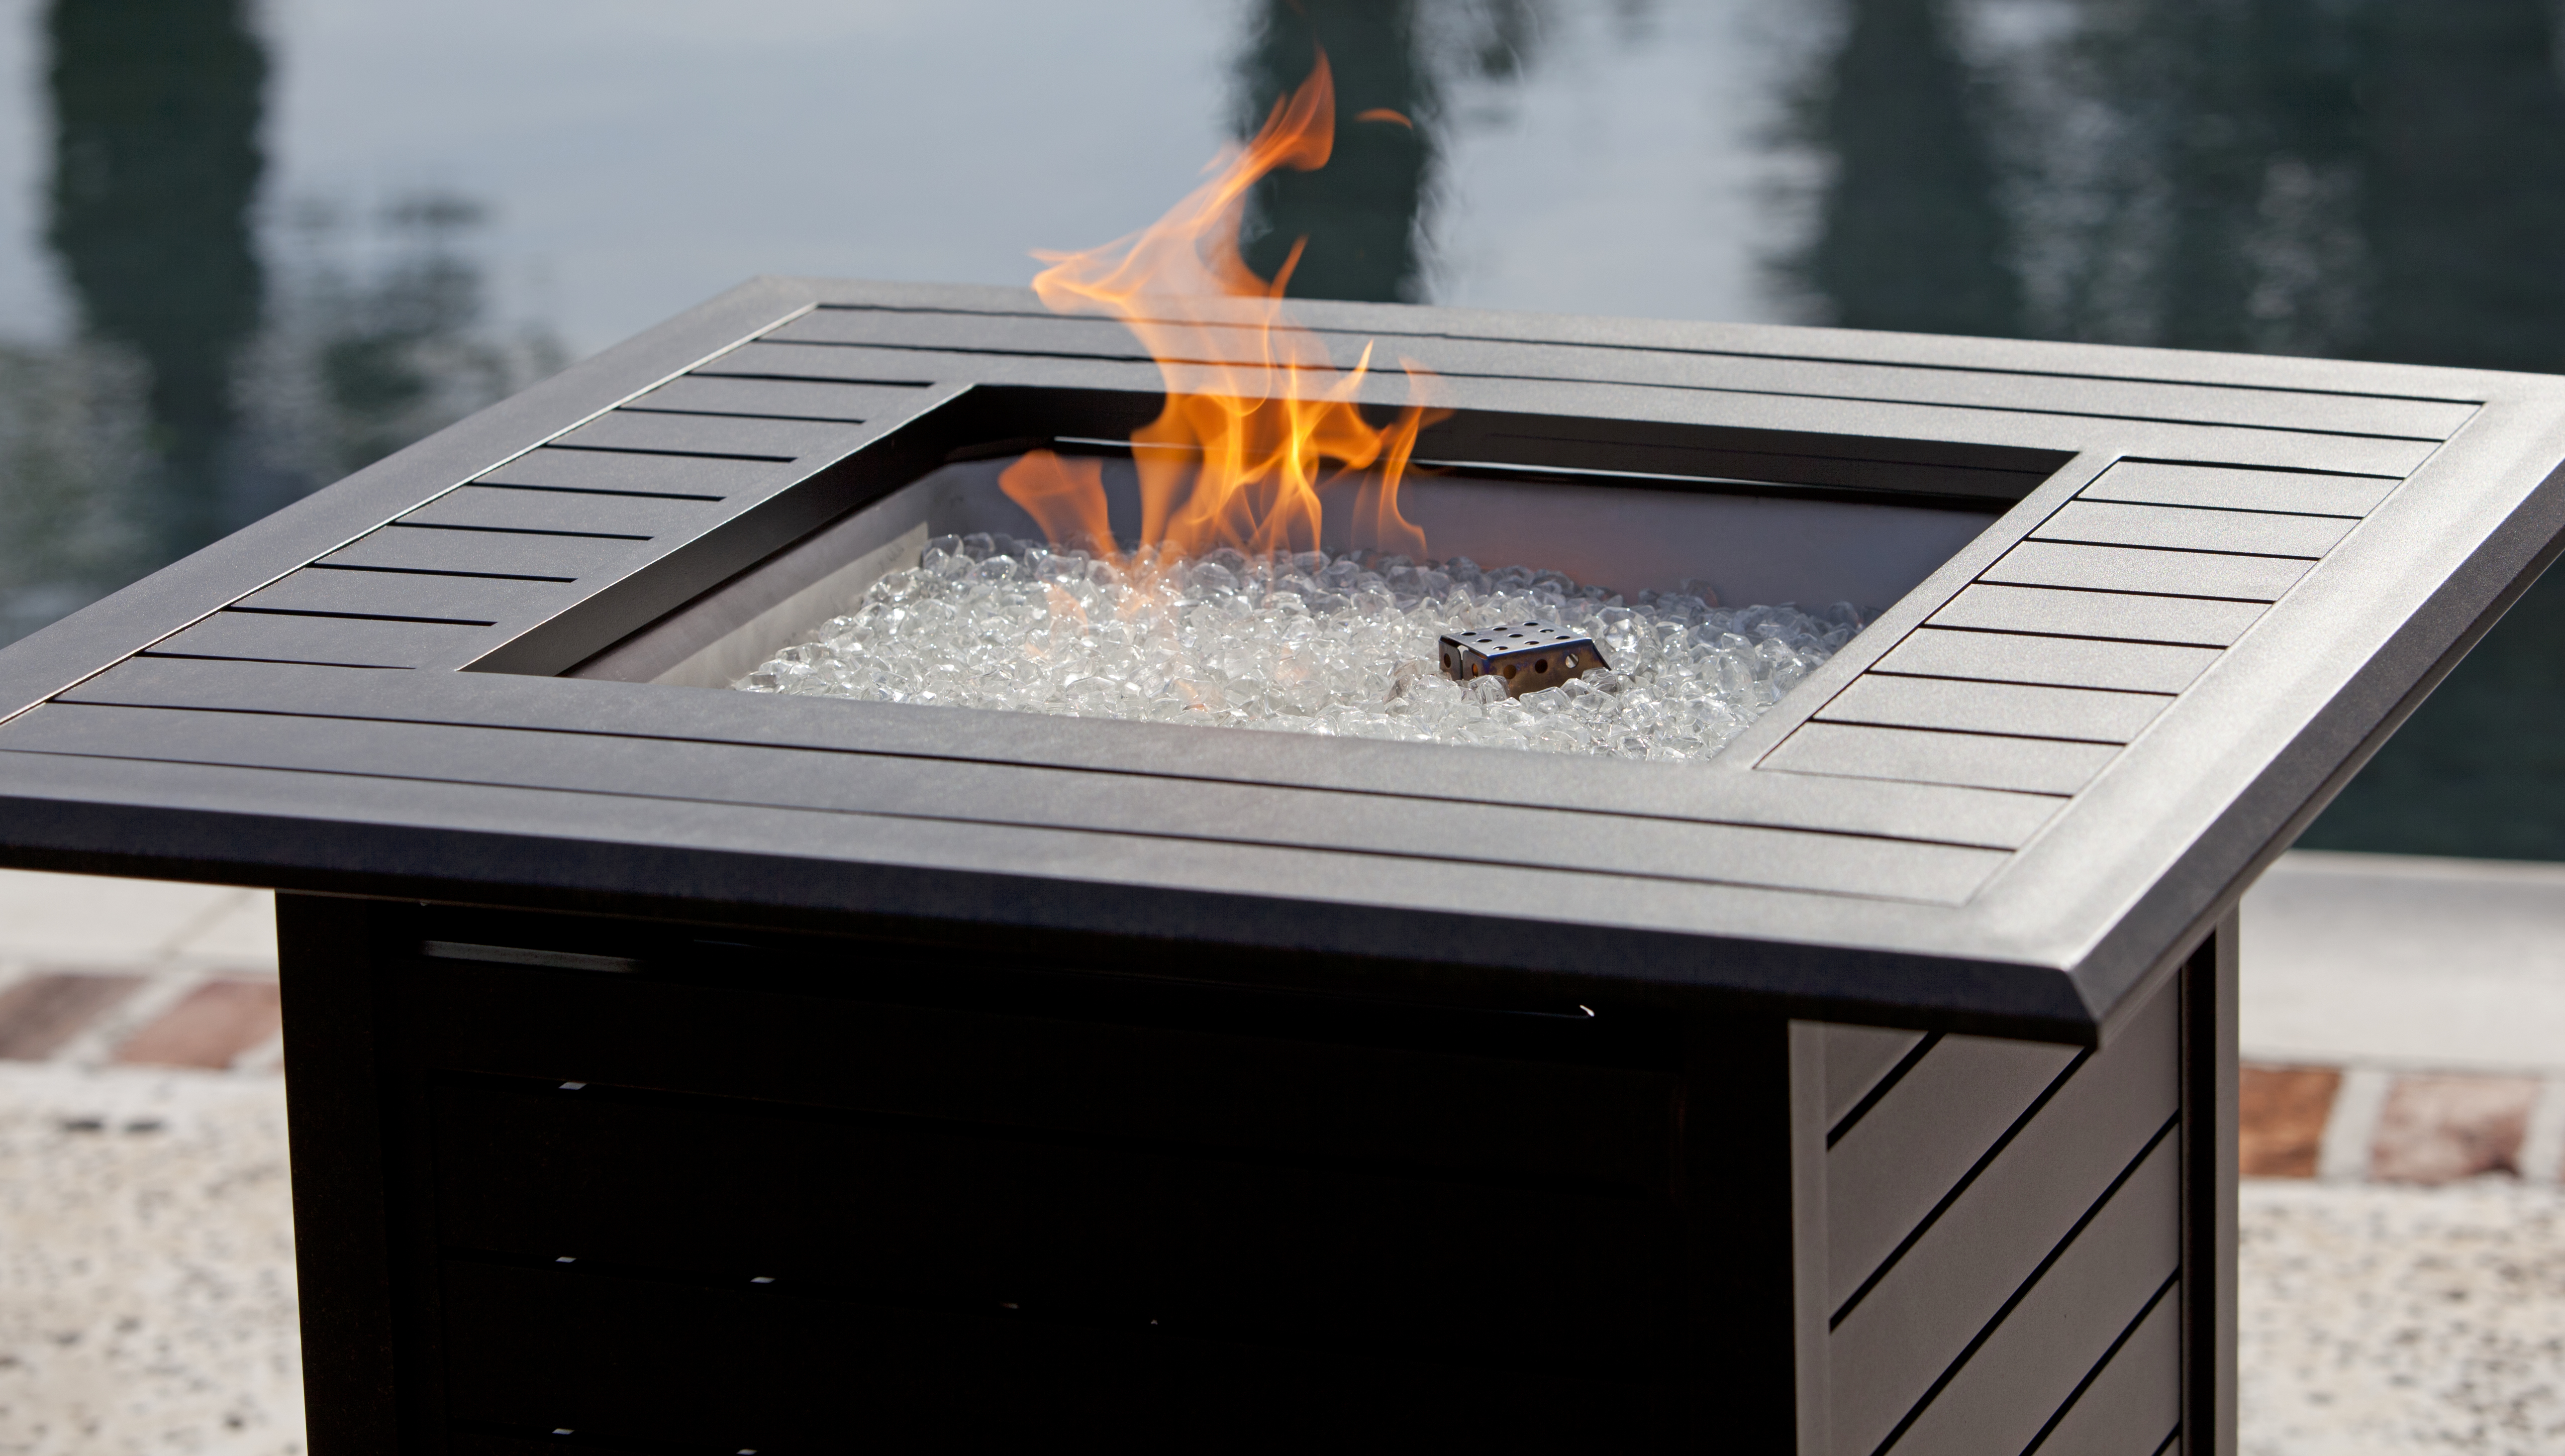 Donato Extruded Aluminum Vbistro Lpg Fire Pit Well